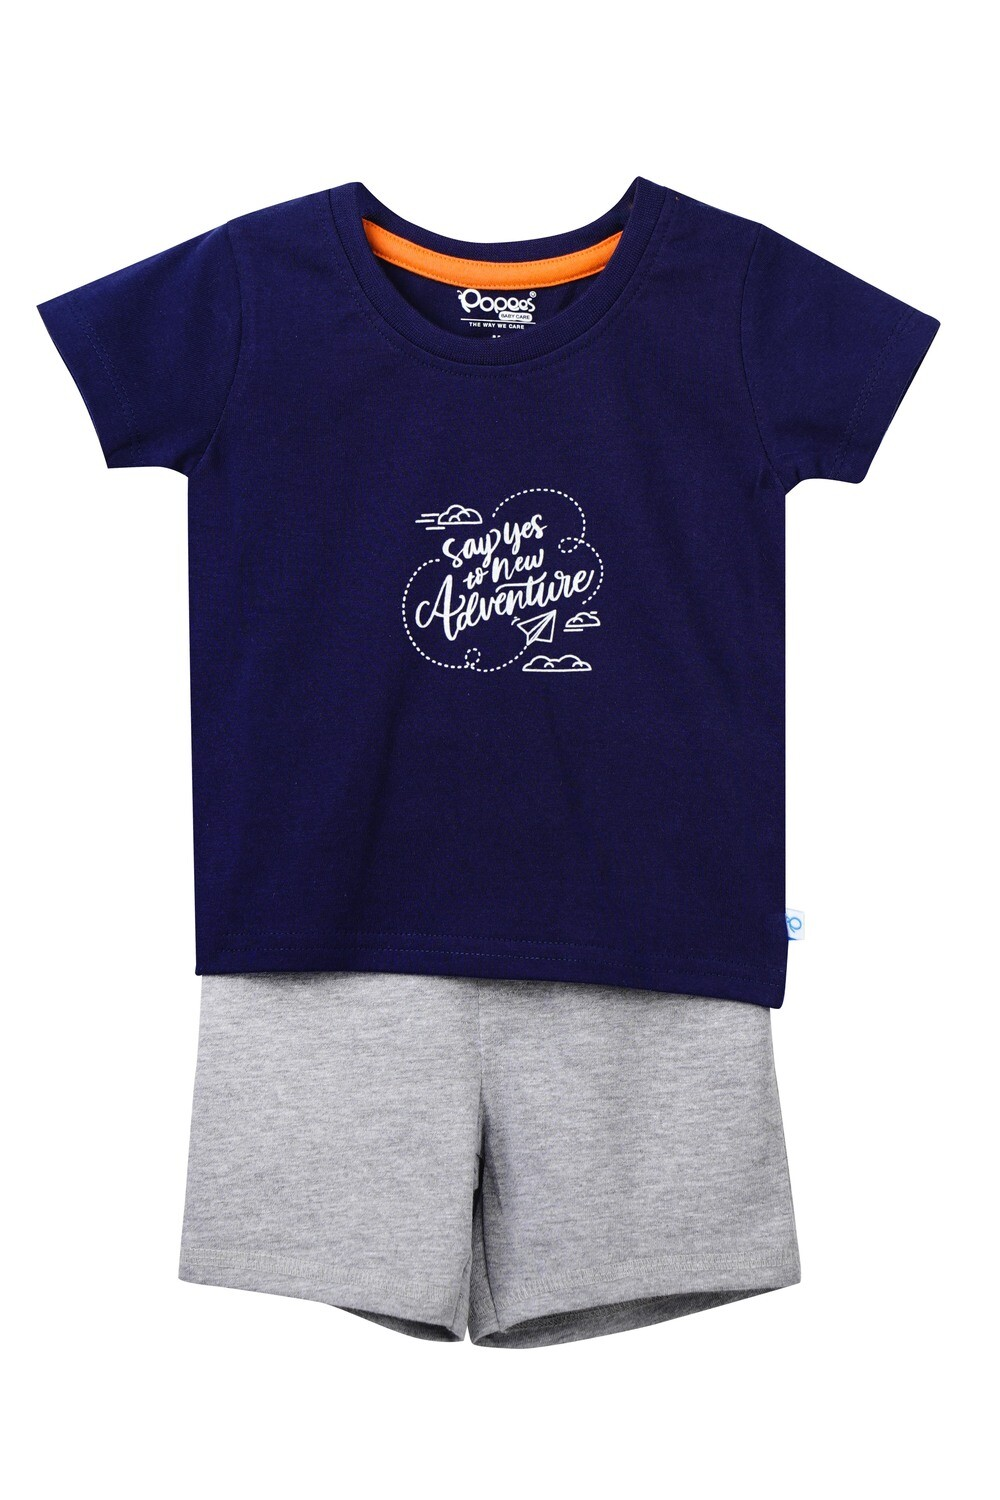 LOGER PEACOTNAVY Top & Shorts Half Sleeve Front Open Cotton Interlock Single Jersey for Baby BOYS during Spring-Summer